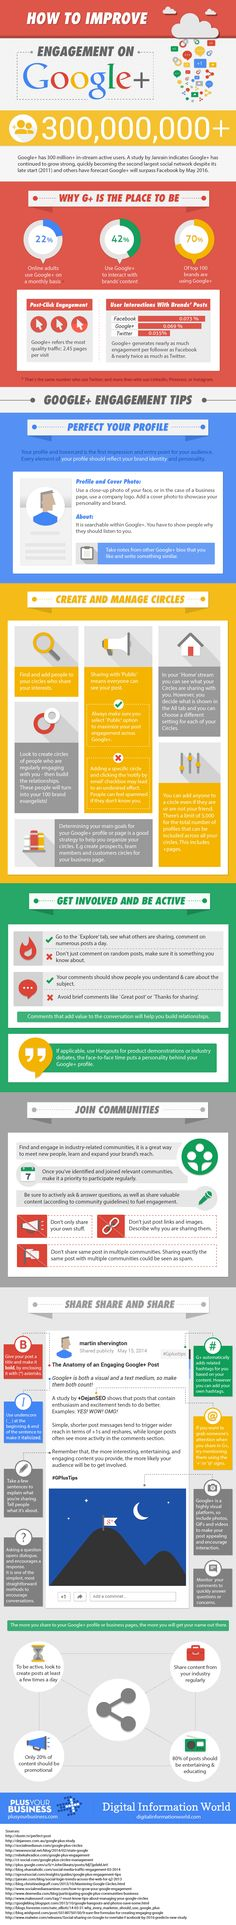 How to Improve Your Google+ Engagement: Infographic | iAcquire Blog